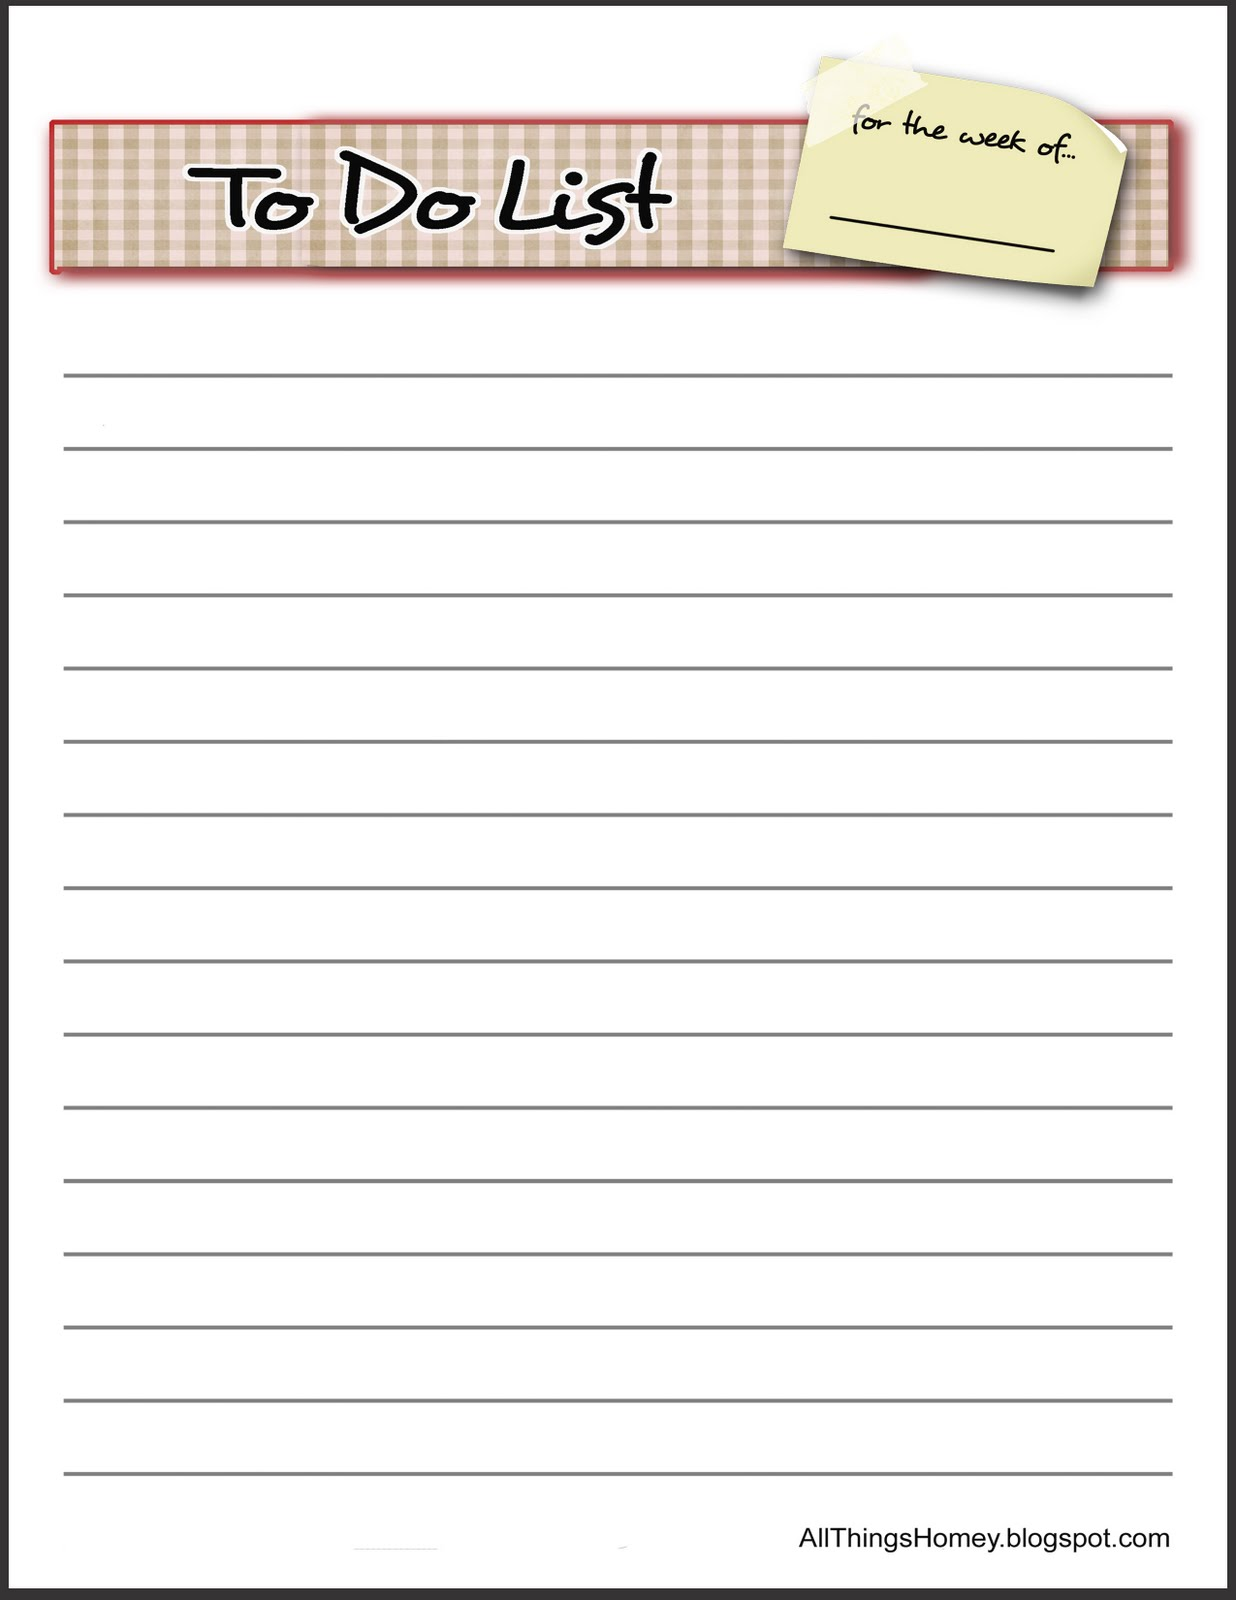 Things To Do List Pictures to Pin PinsDaddy – Things to Do Checklist Template